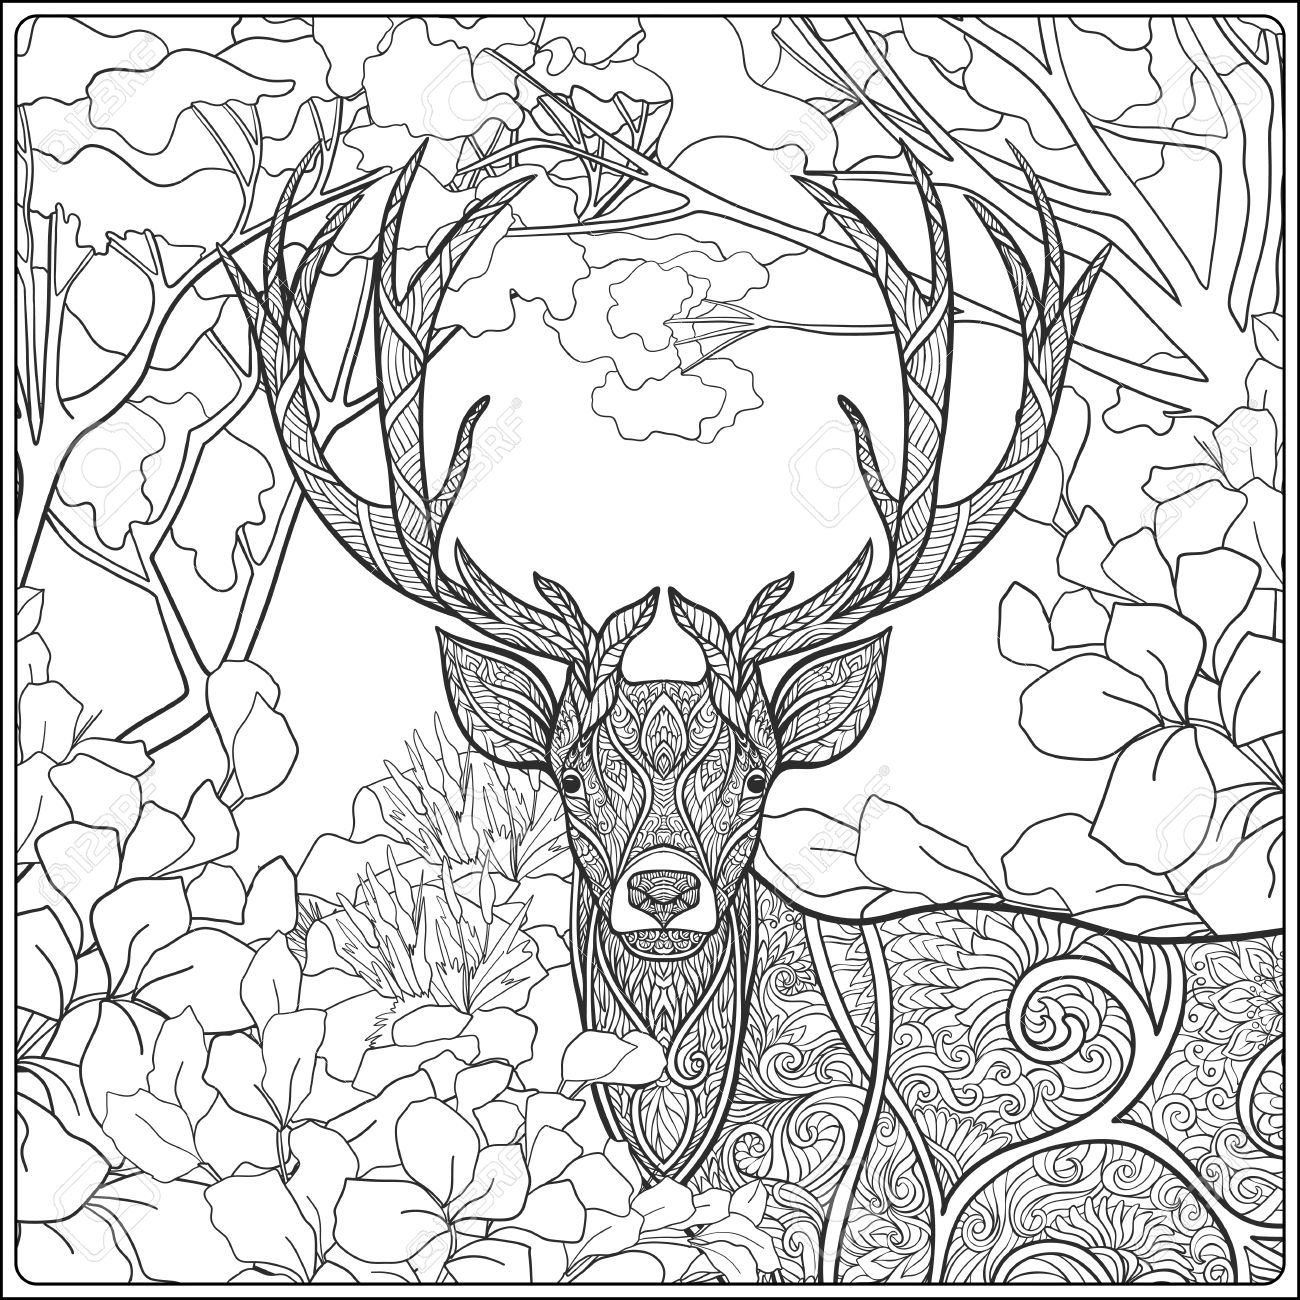 Coloring Page With Deer In Forest. Coloring Book For Adult And ...